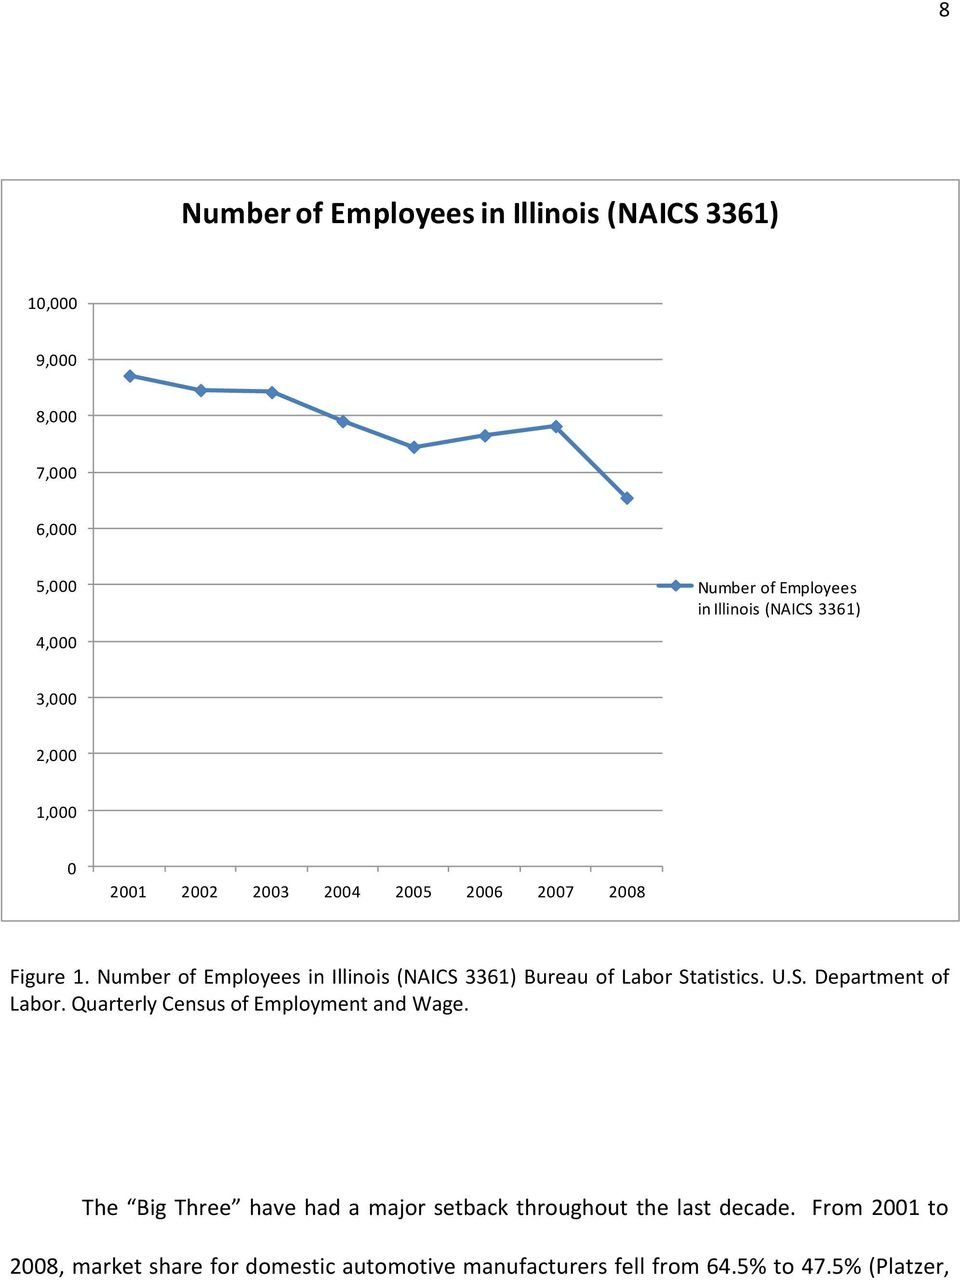 Number of Employees in Illinois (NAICS 3361) Bureau of Labor Statistics. U.S. Department of Labor.